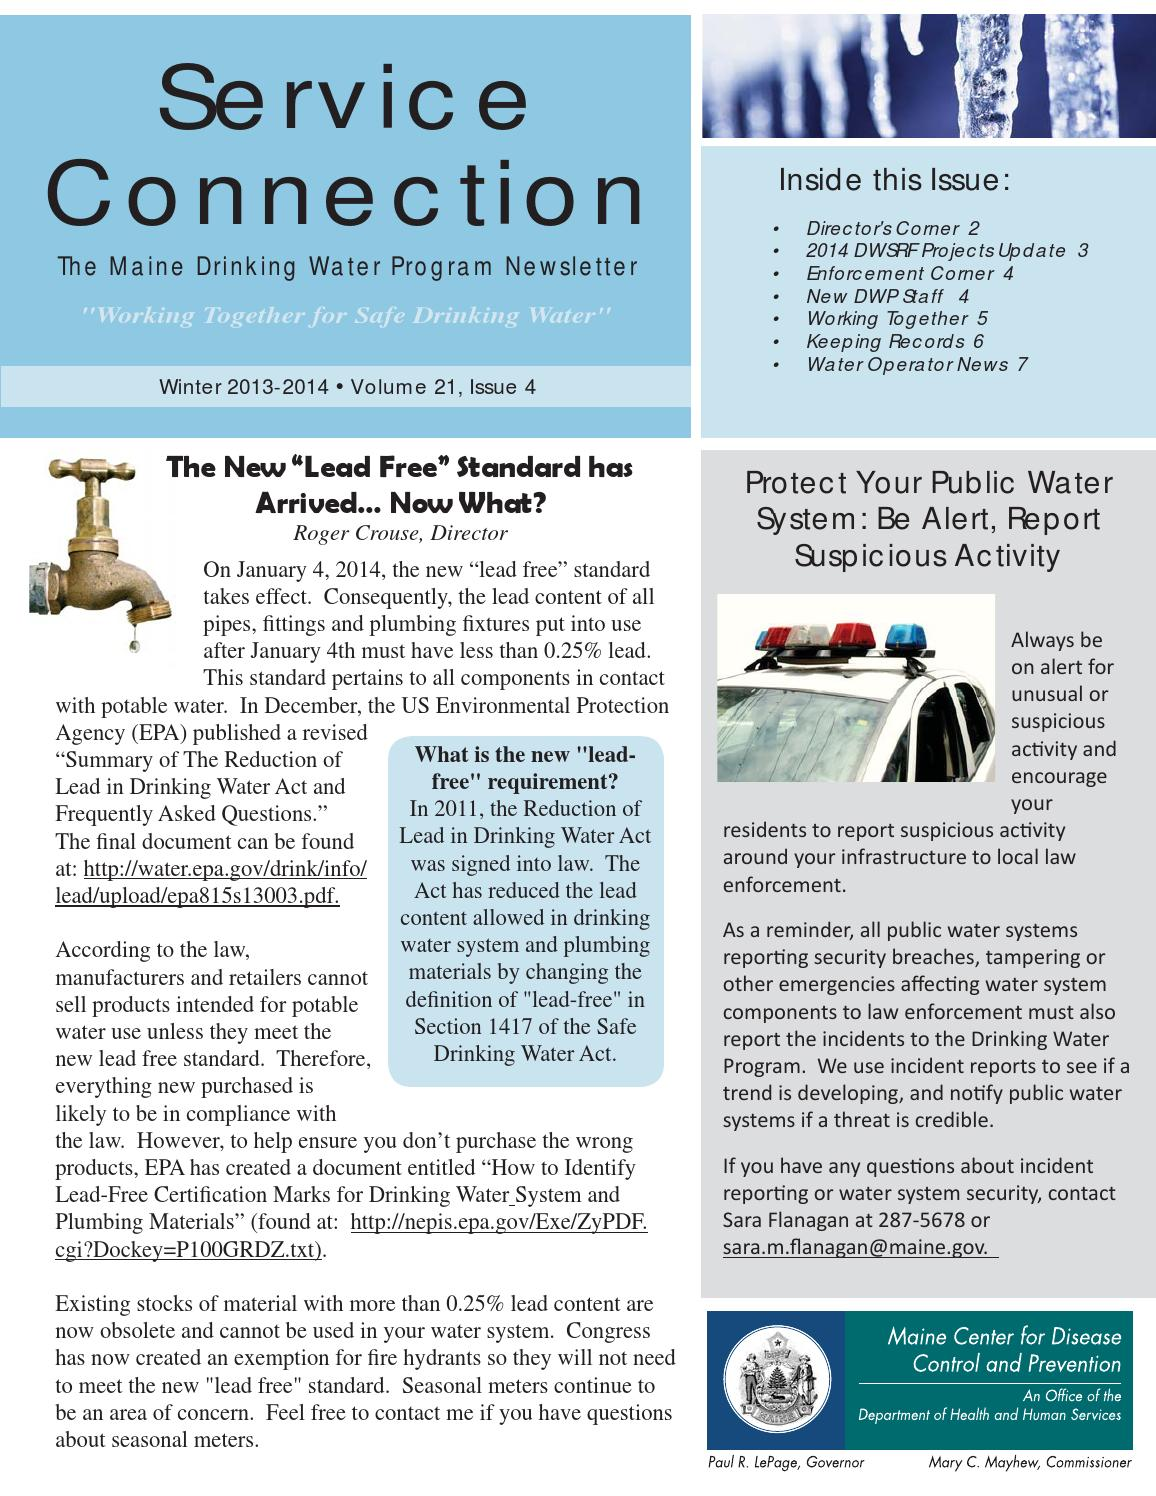 Winter 2013-2014 Service Connection Newsletter, Vol  21-4 by